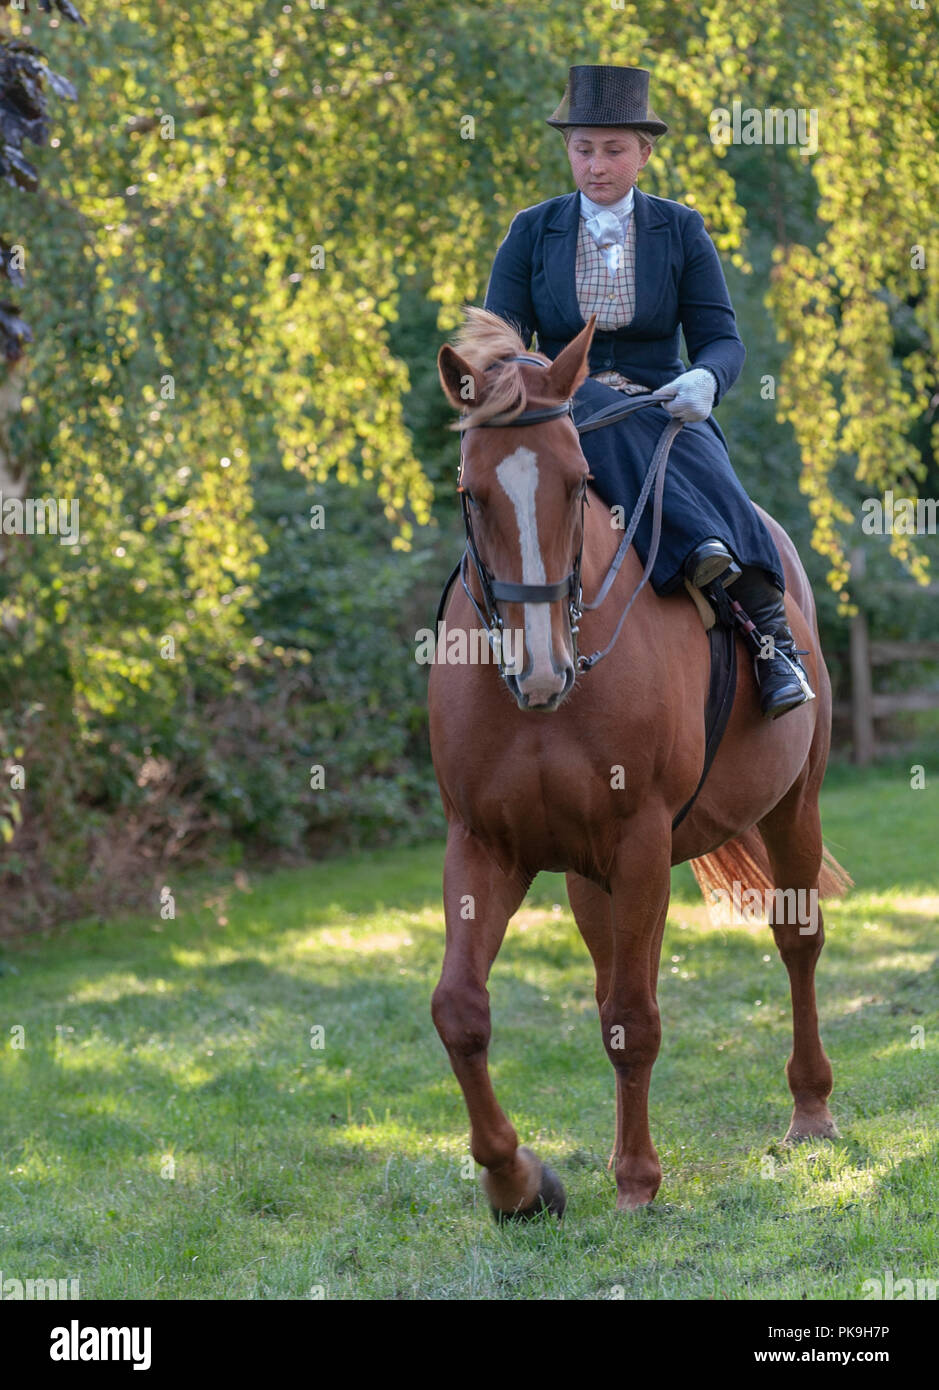 An elegent young lady riding in a traditional side saddle wearing top hat  and face veil ddc467c434a